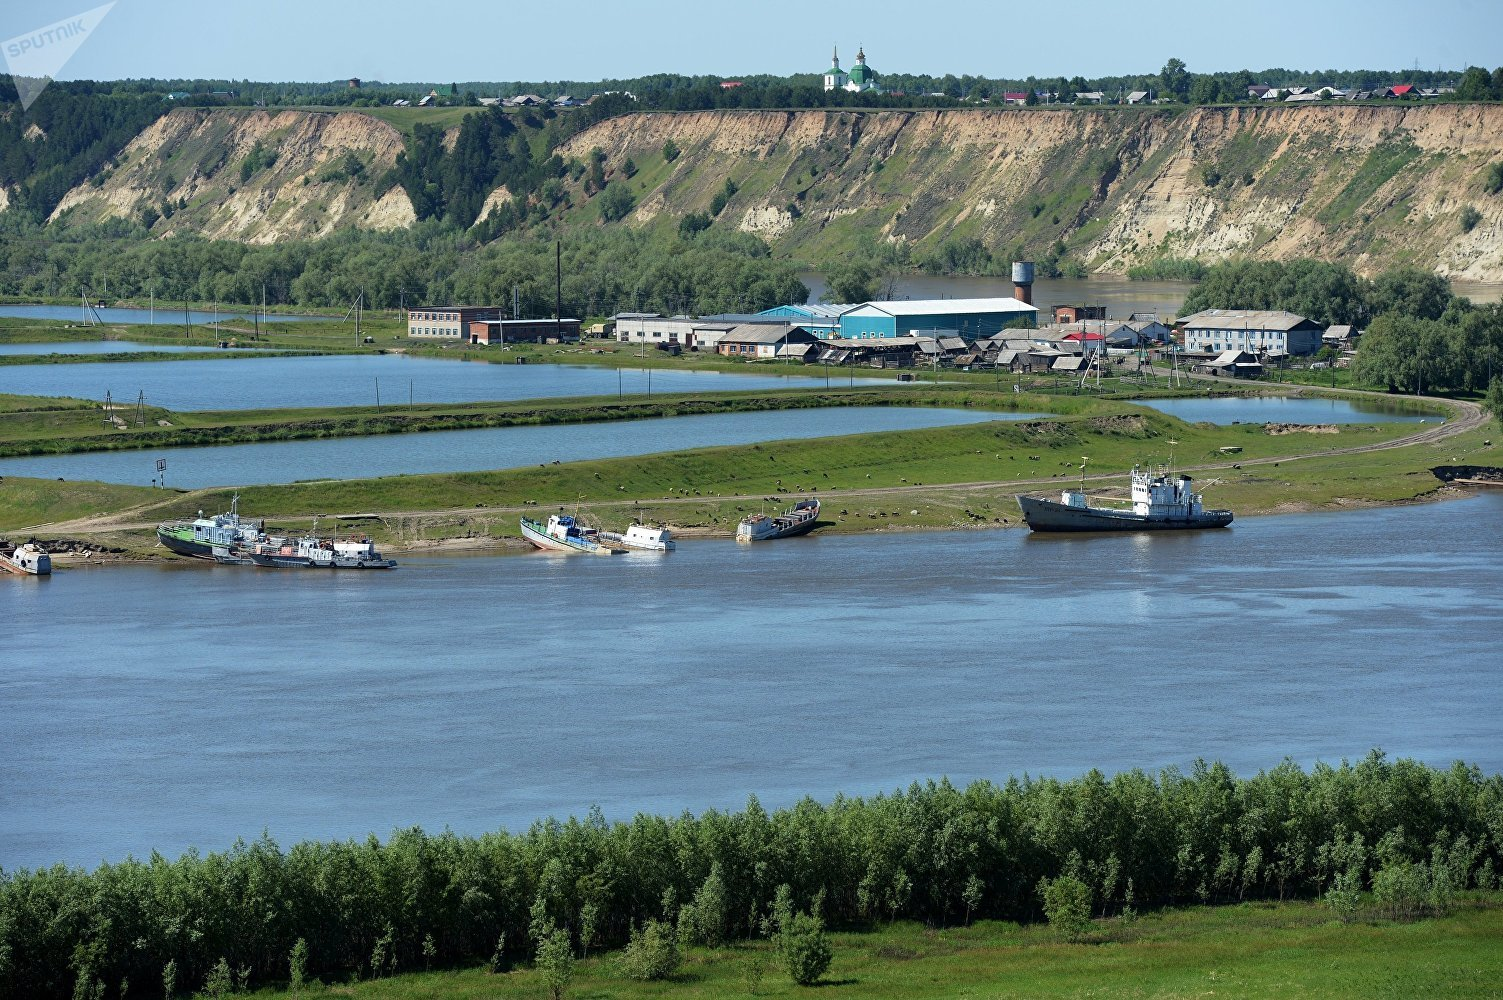 The fishing industry of Abalak Znamensky Monastery in the village of Abalak